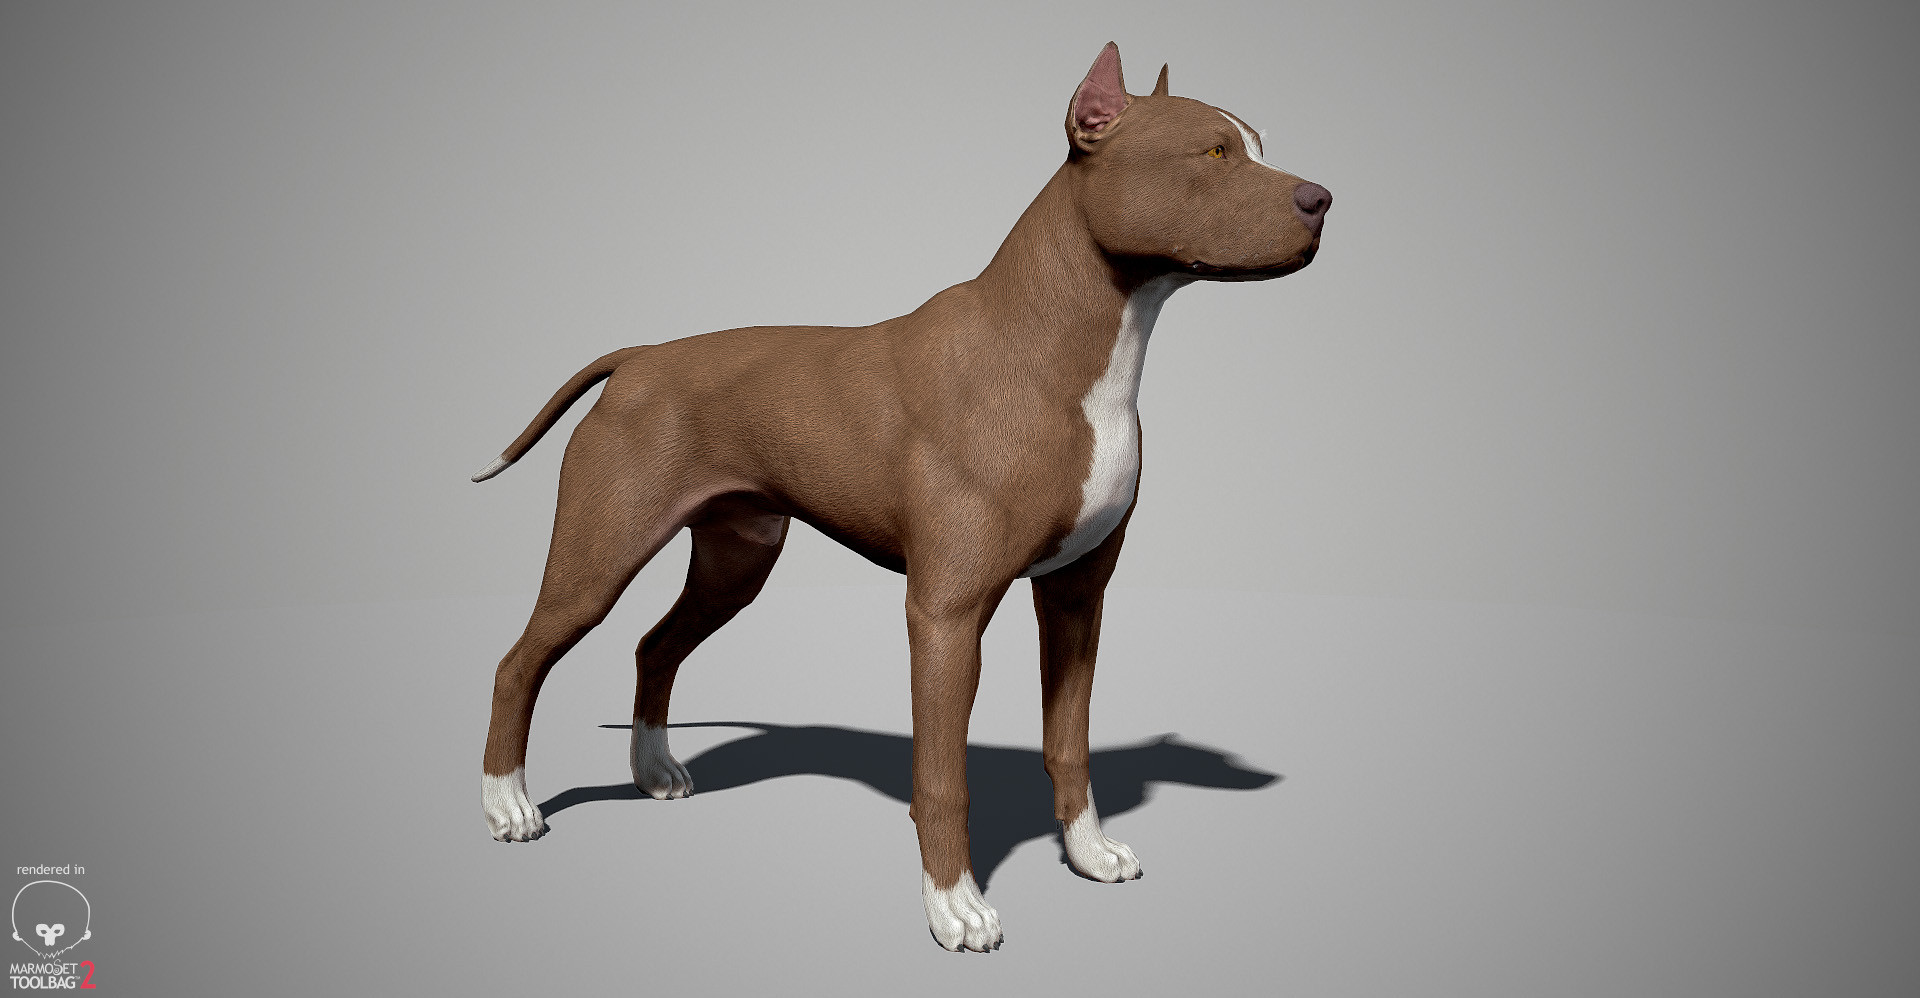 Alex lashko pitbull by alexlashk marmoset 02